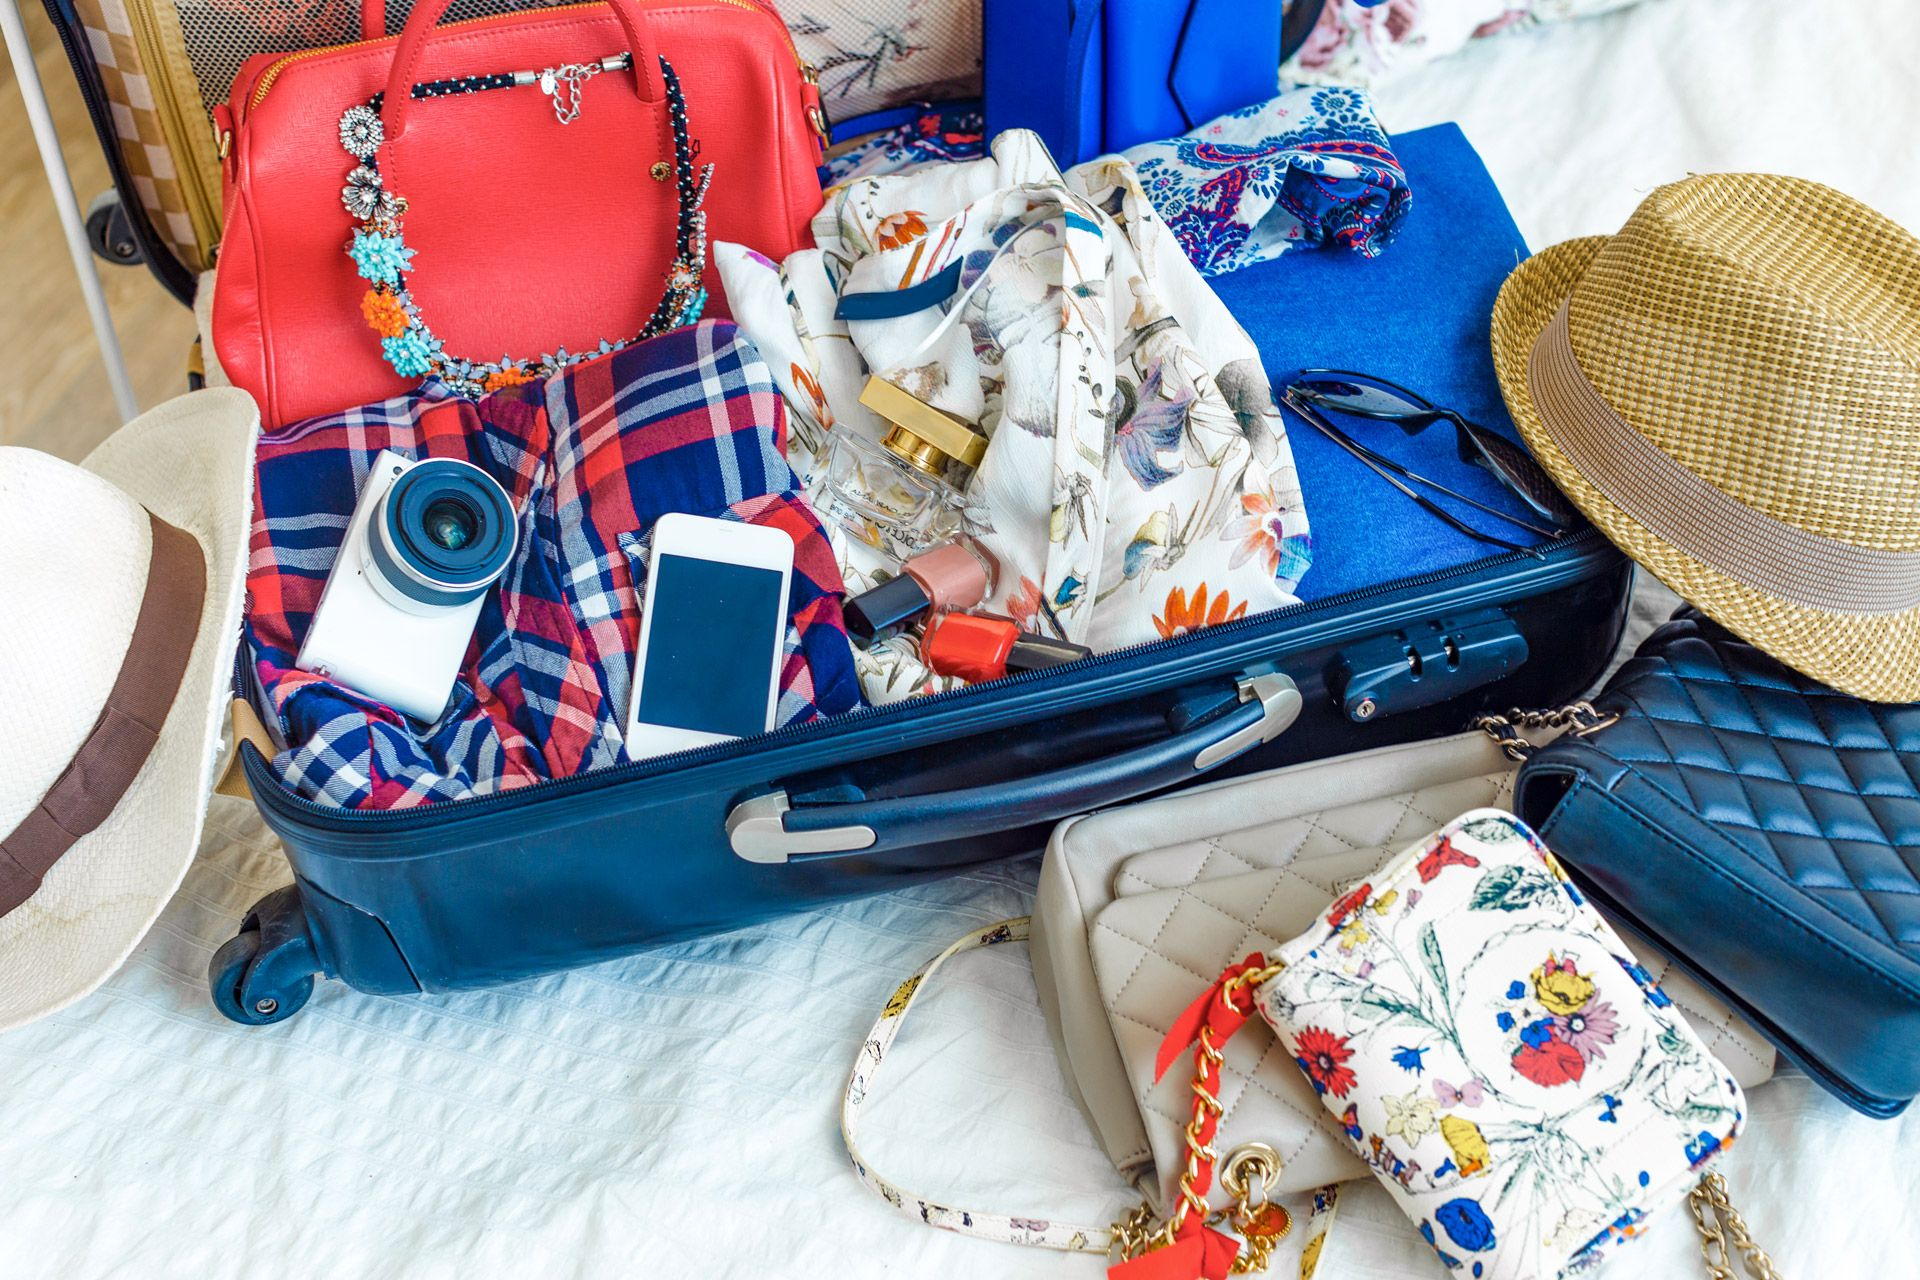 woman's packed suitcase